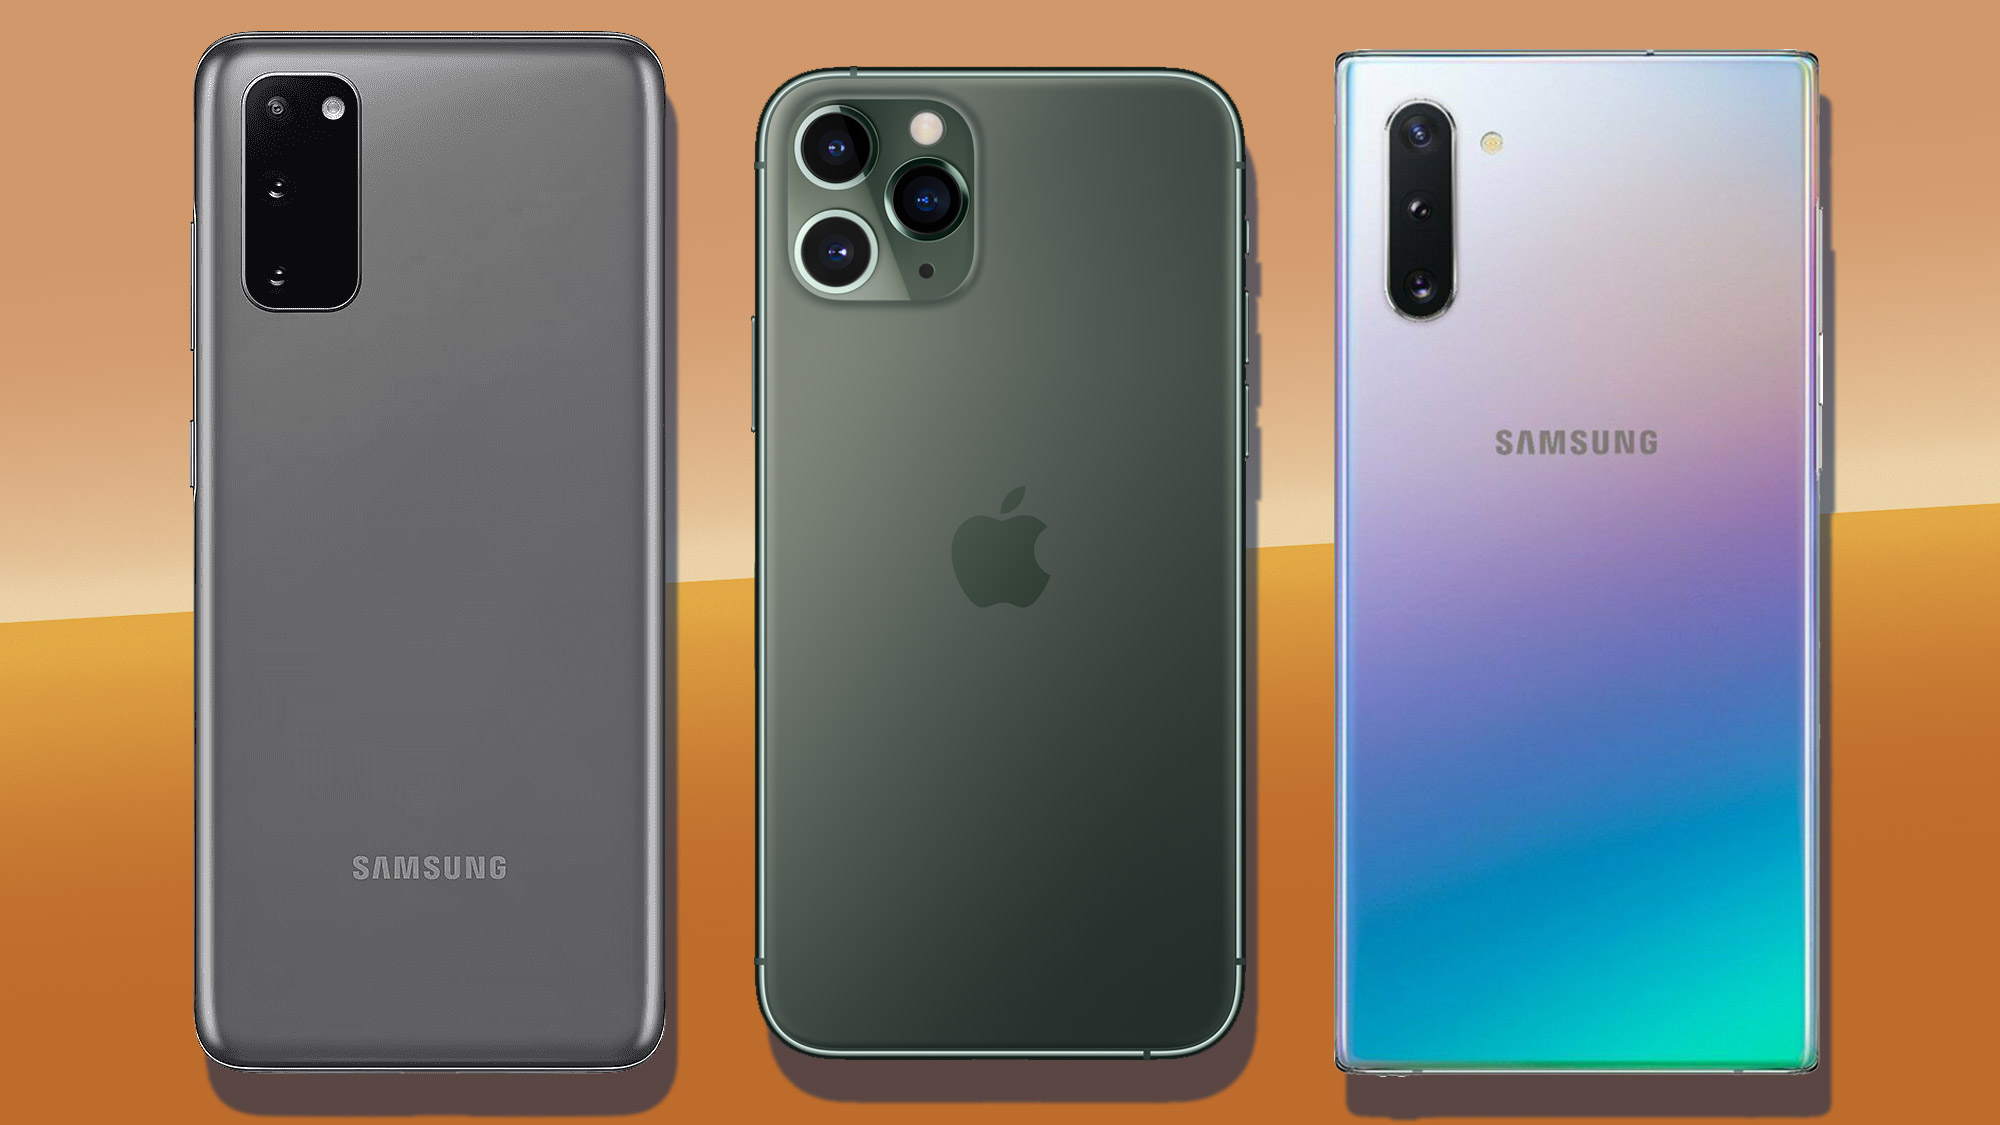 Best Smartphone 2020 The Very Top Phones Ranked Techradar